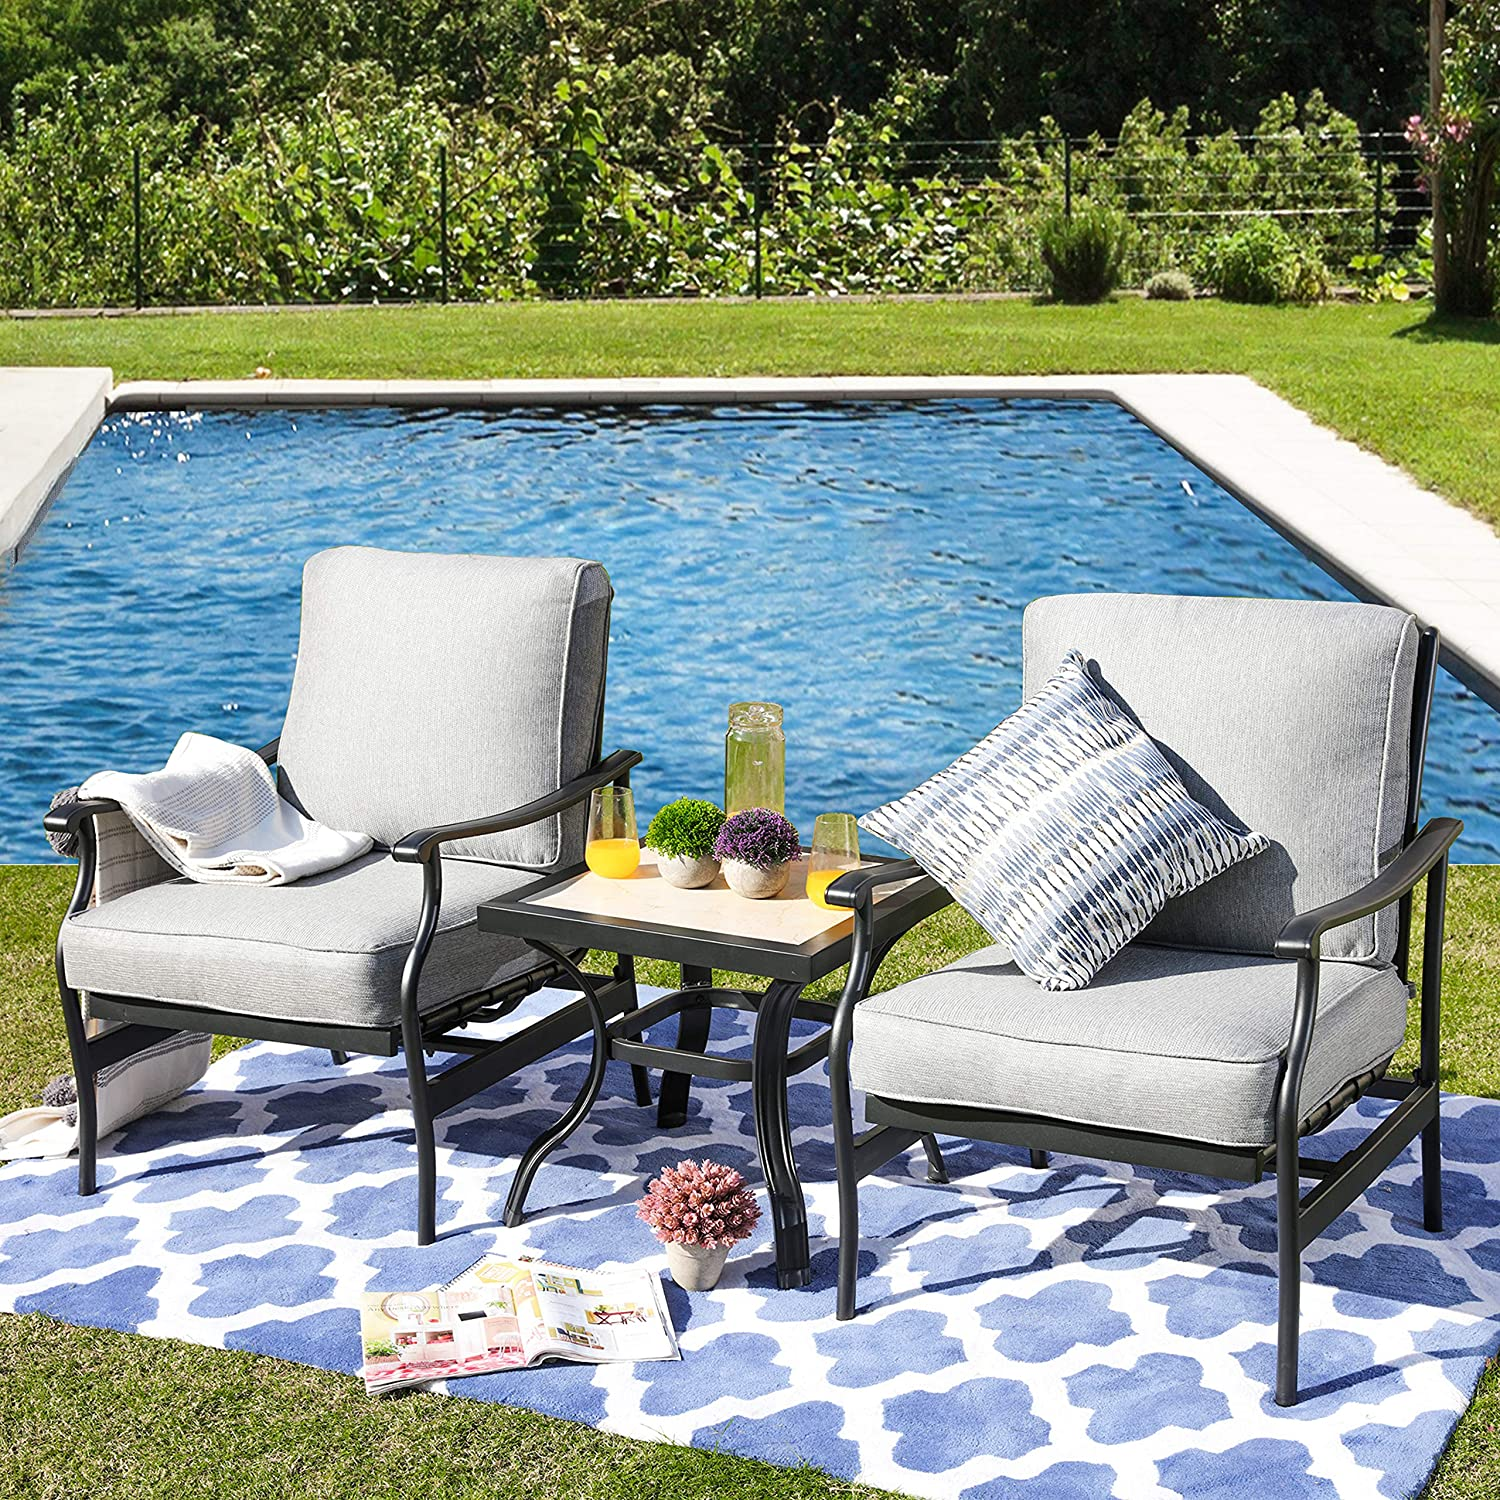 LOKATSE HOME 3 Pcs Outdoor Conversation Furniture Patio Bistro Set Modern Metal Chair with Cushion & Square Coffee Table, Grey